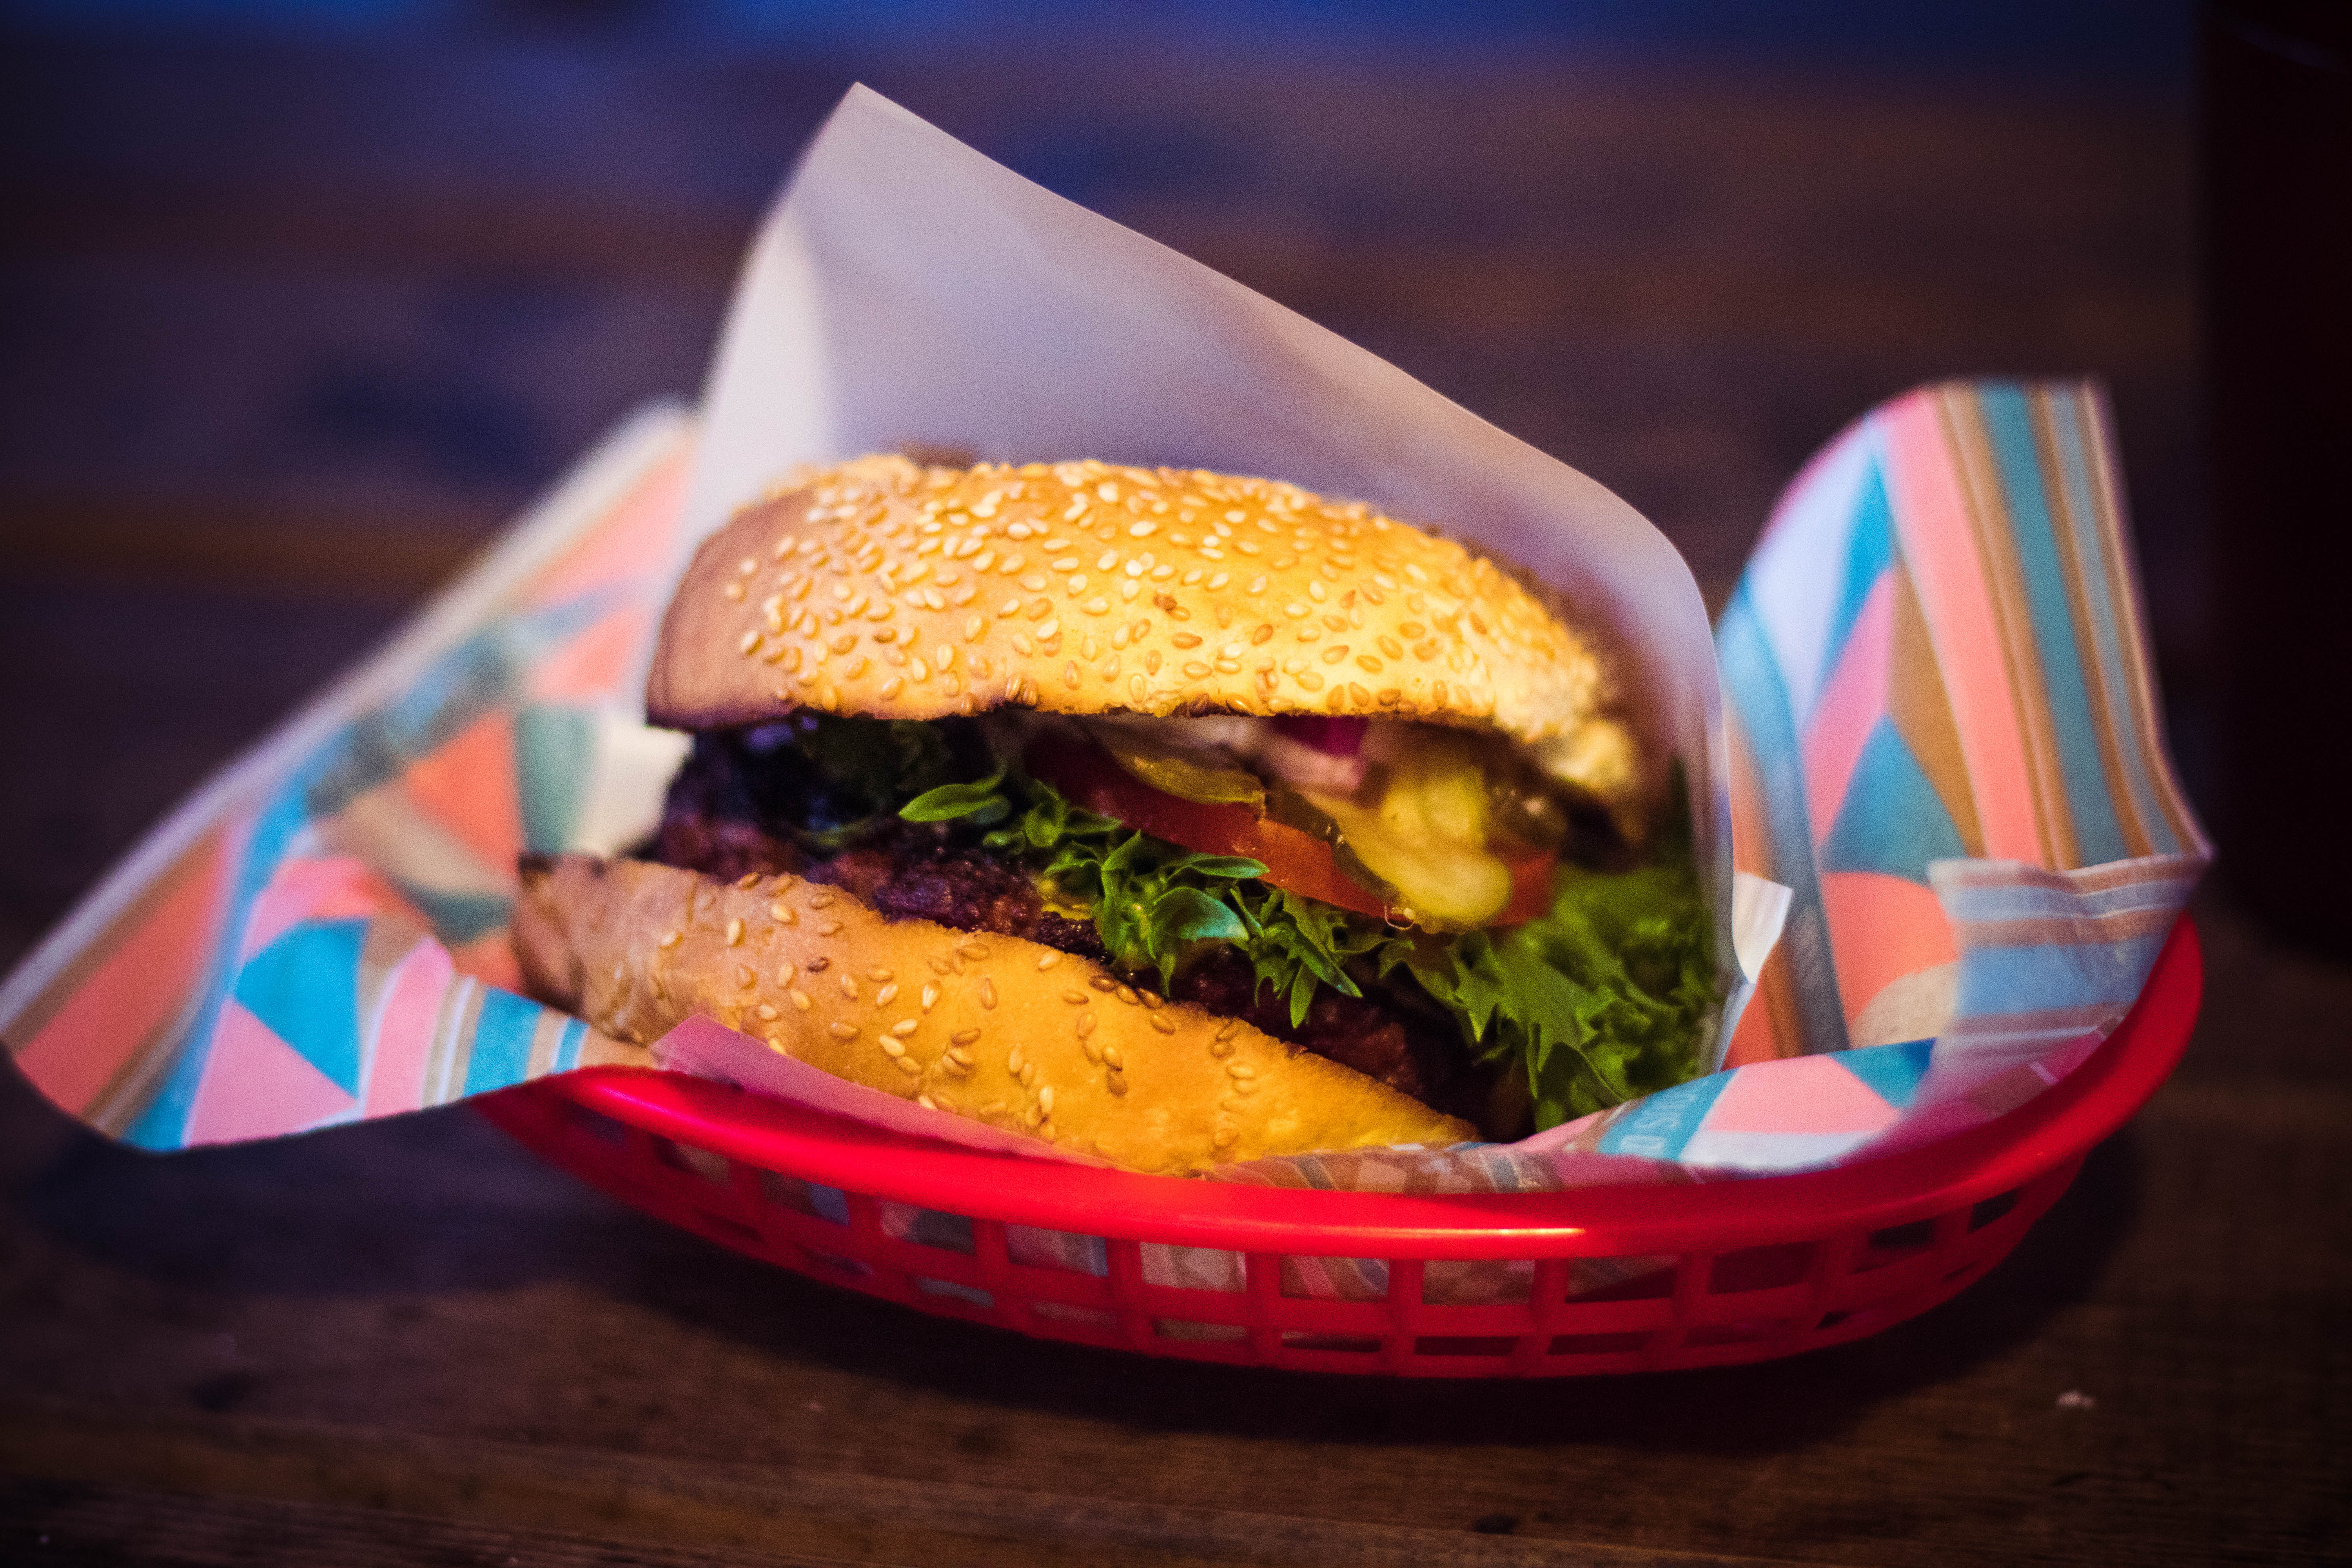 Small Size Car Wallpapers Hamburger On Plate 183 Free Stock Photo